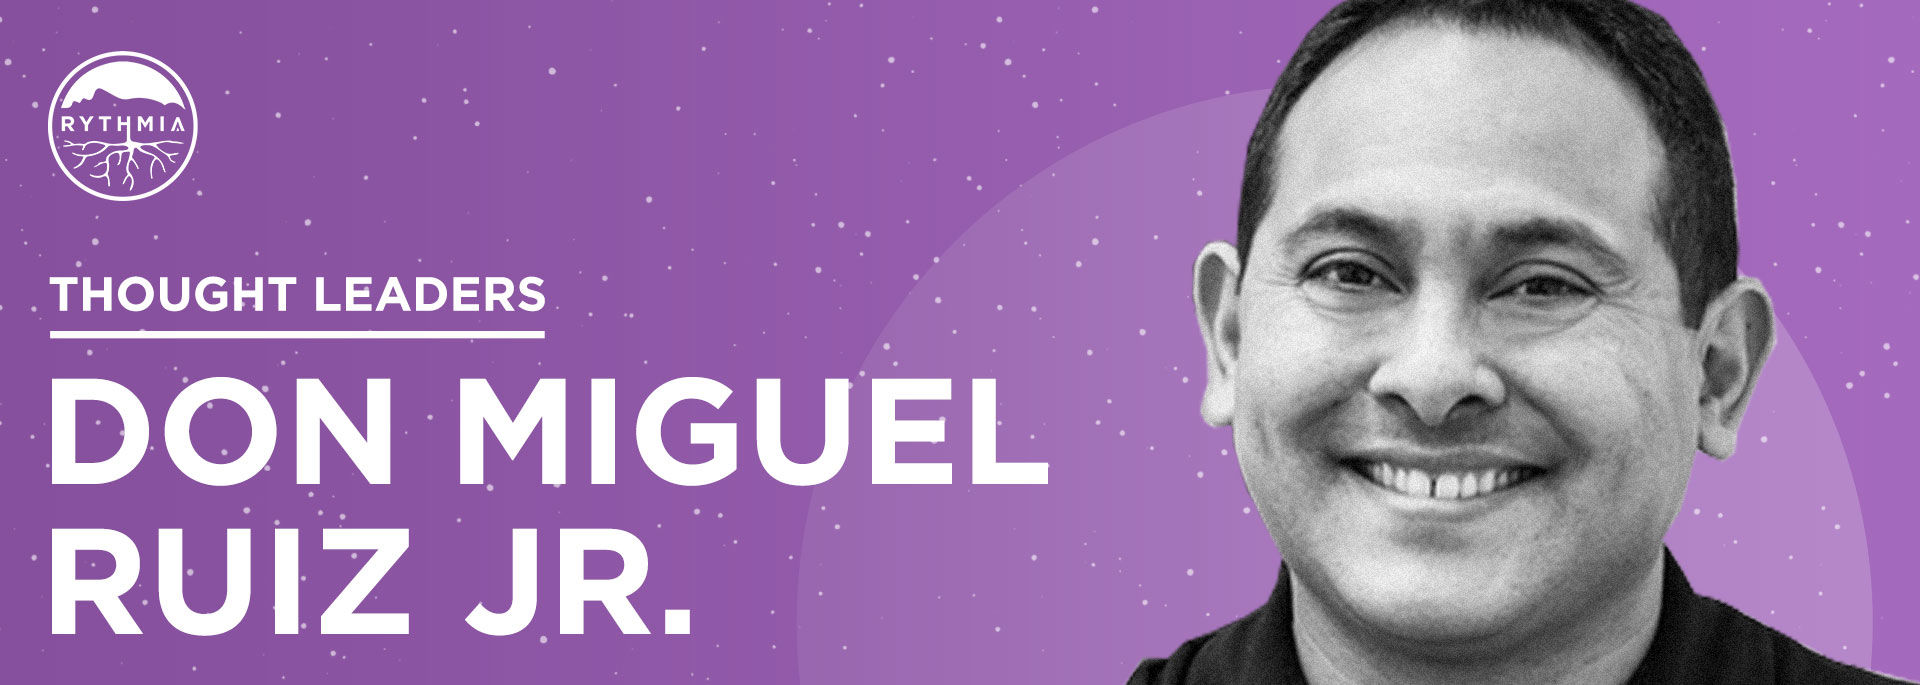 Thought Leaders : Don Miguel Ruiz Jr